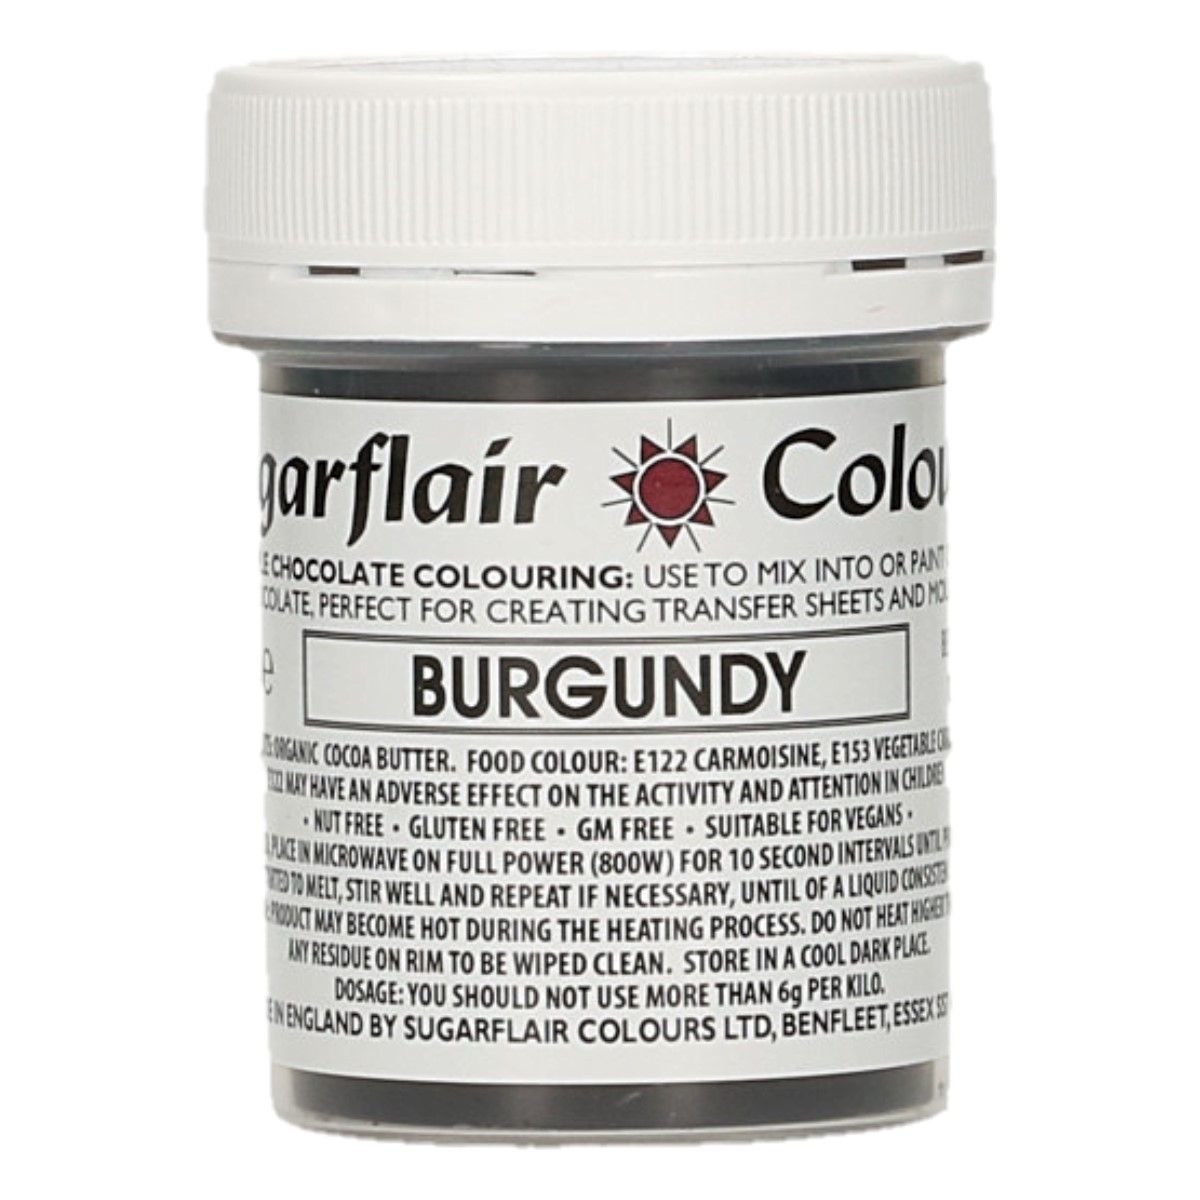 Sugarflair Chocolate Colour Burgundy 35g